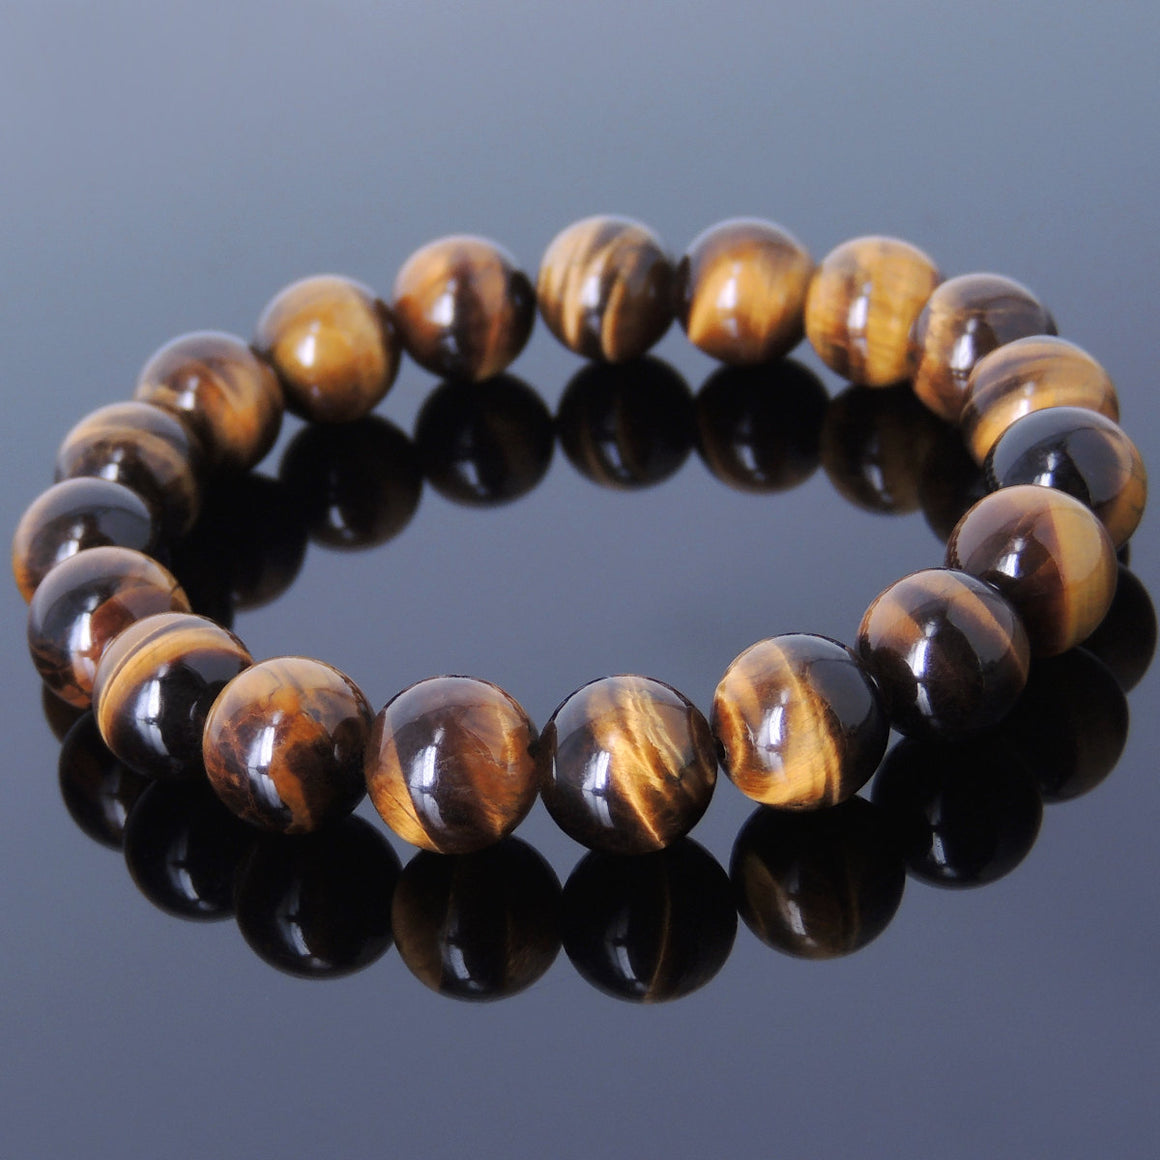 10mm Brown Tiger Eye Healing Gemstone Bracelet - Handmade by Gem & Silver BR444